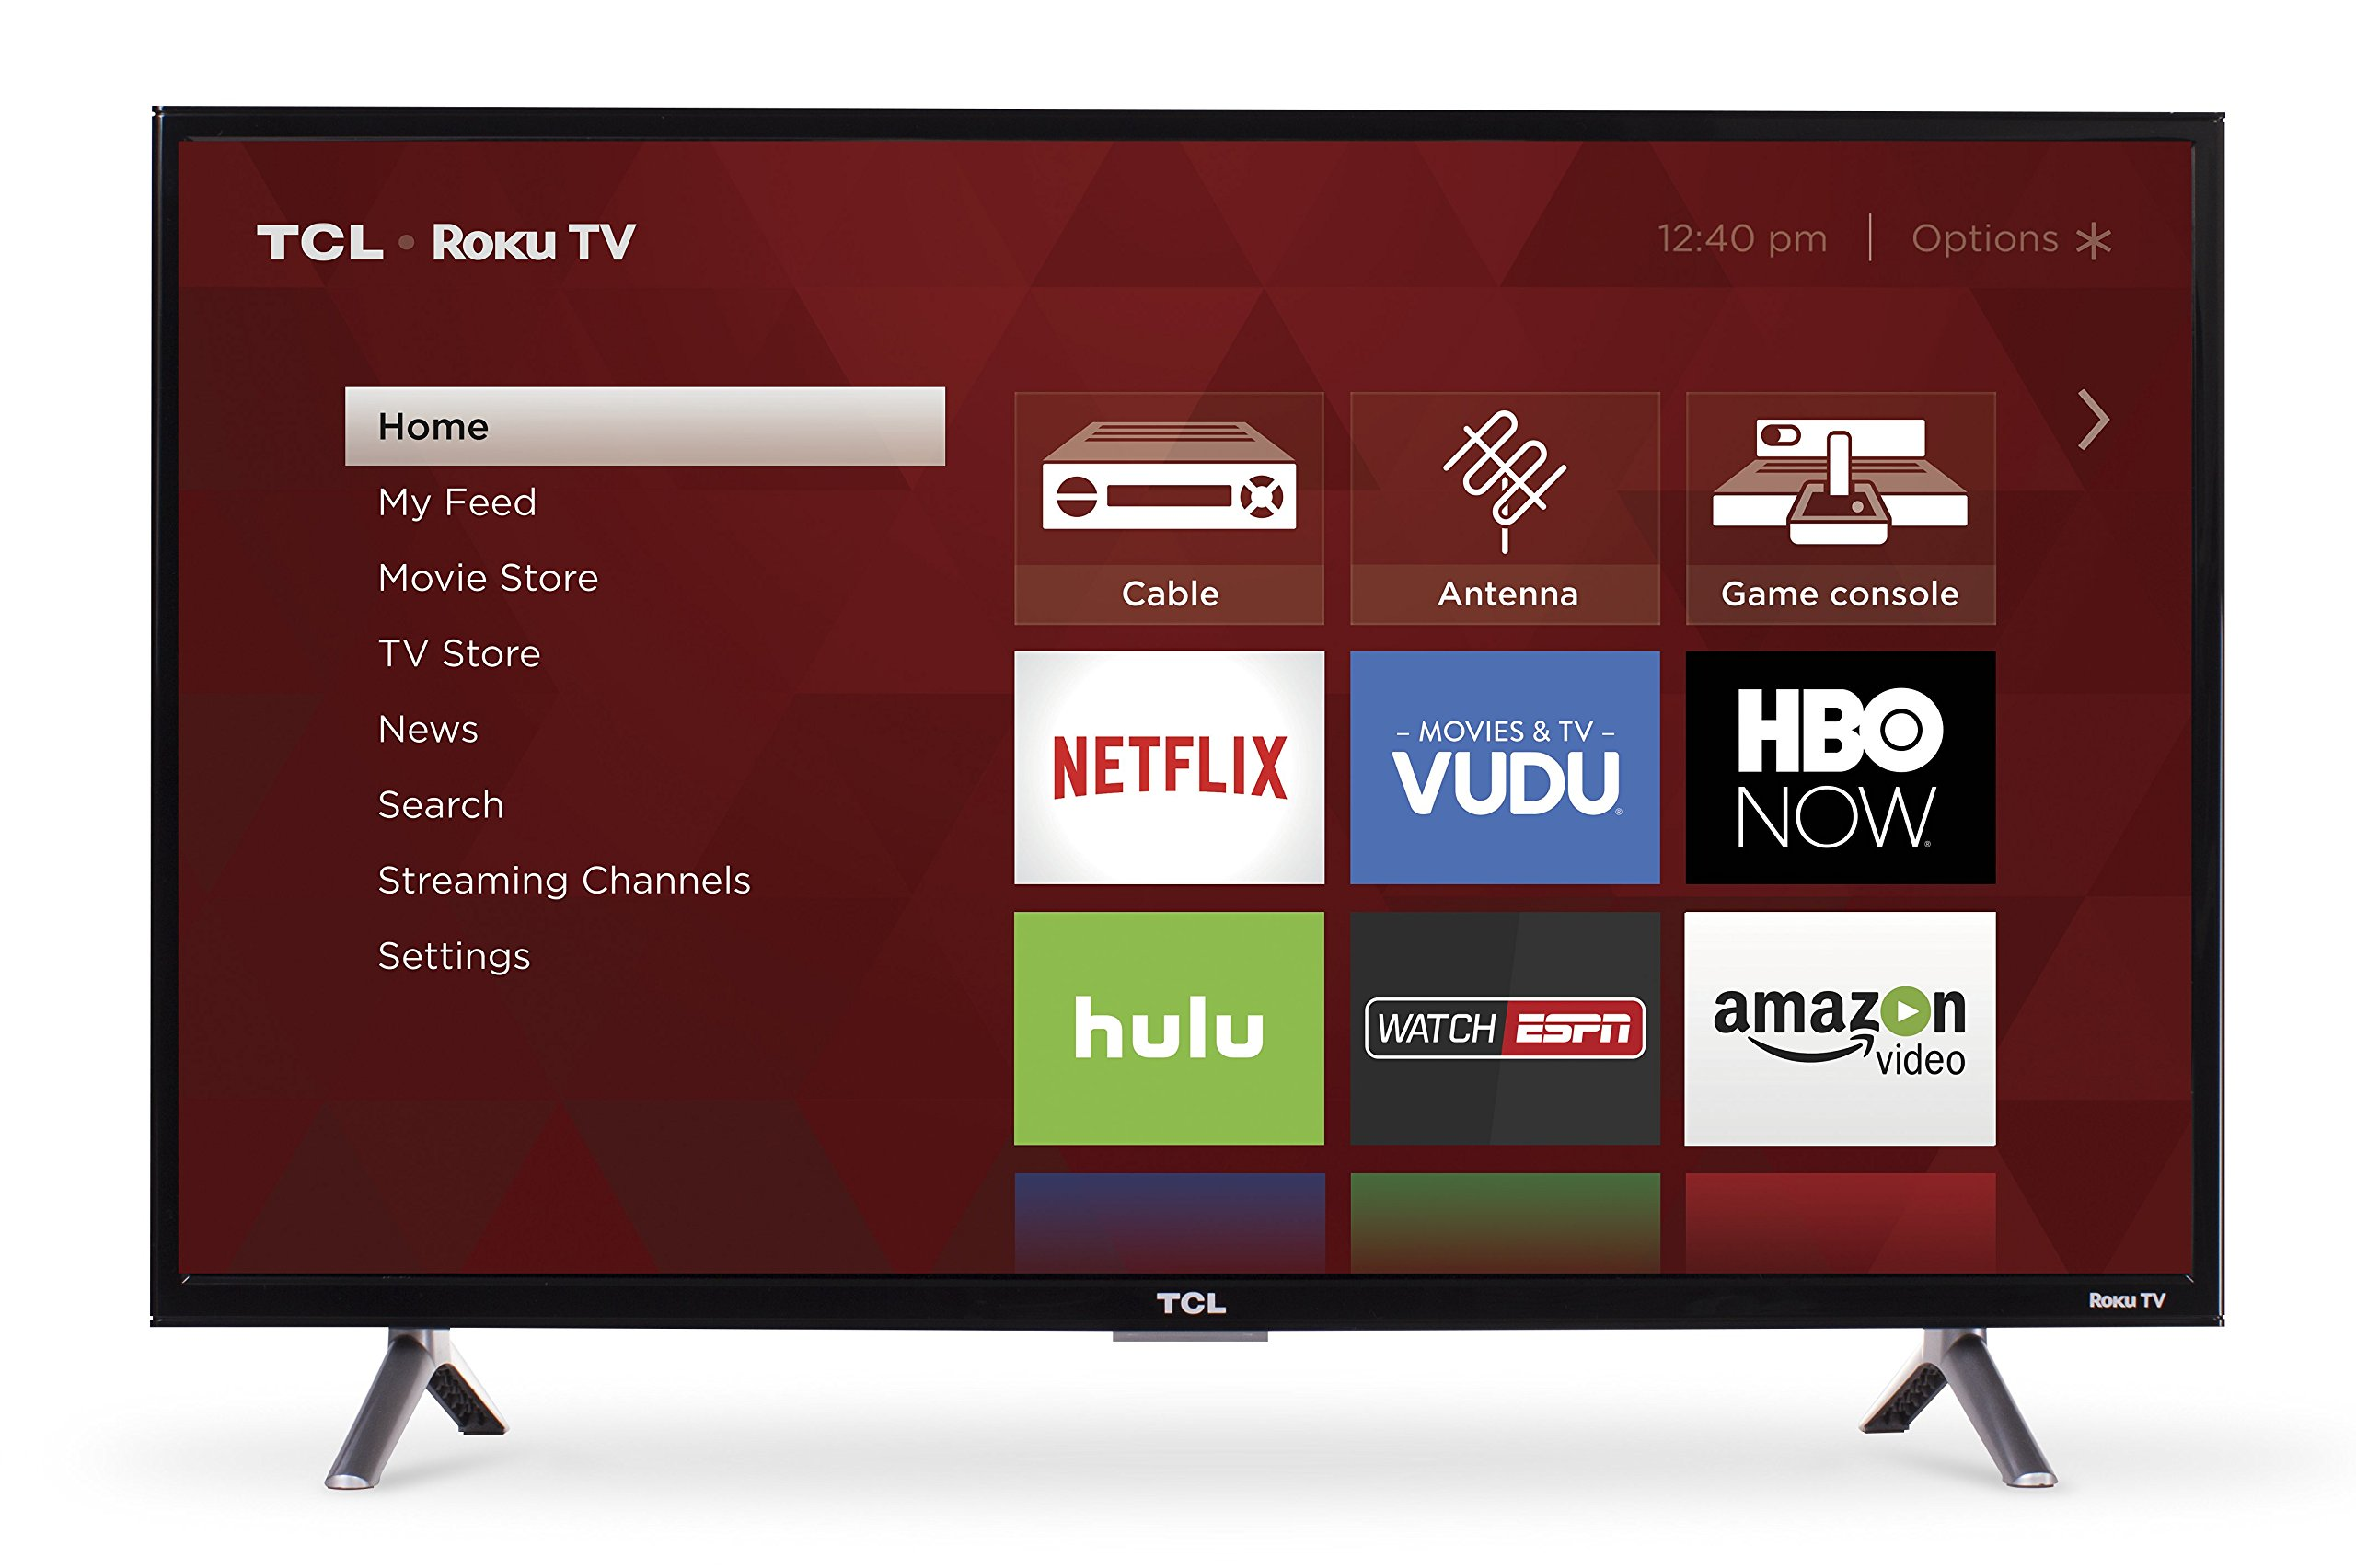 TCL 32S305 32-Inch 720p Roku Smart LED TV (2017 Model) by TCL